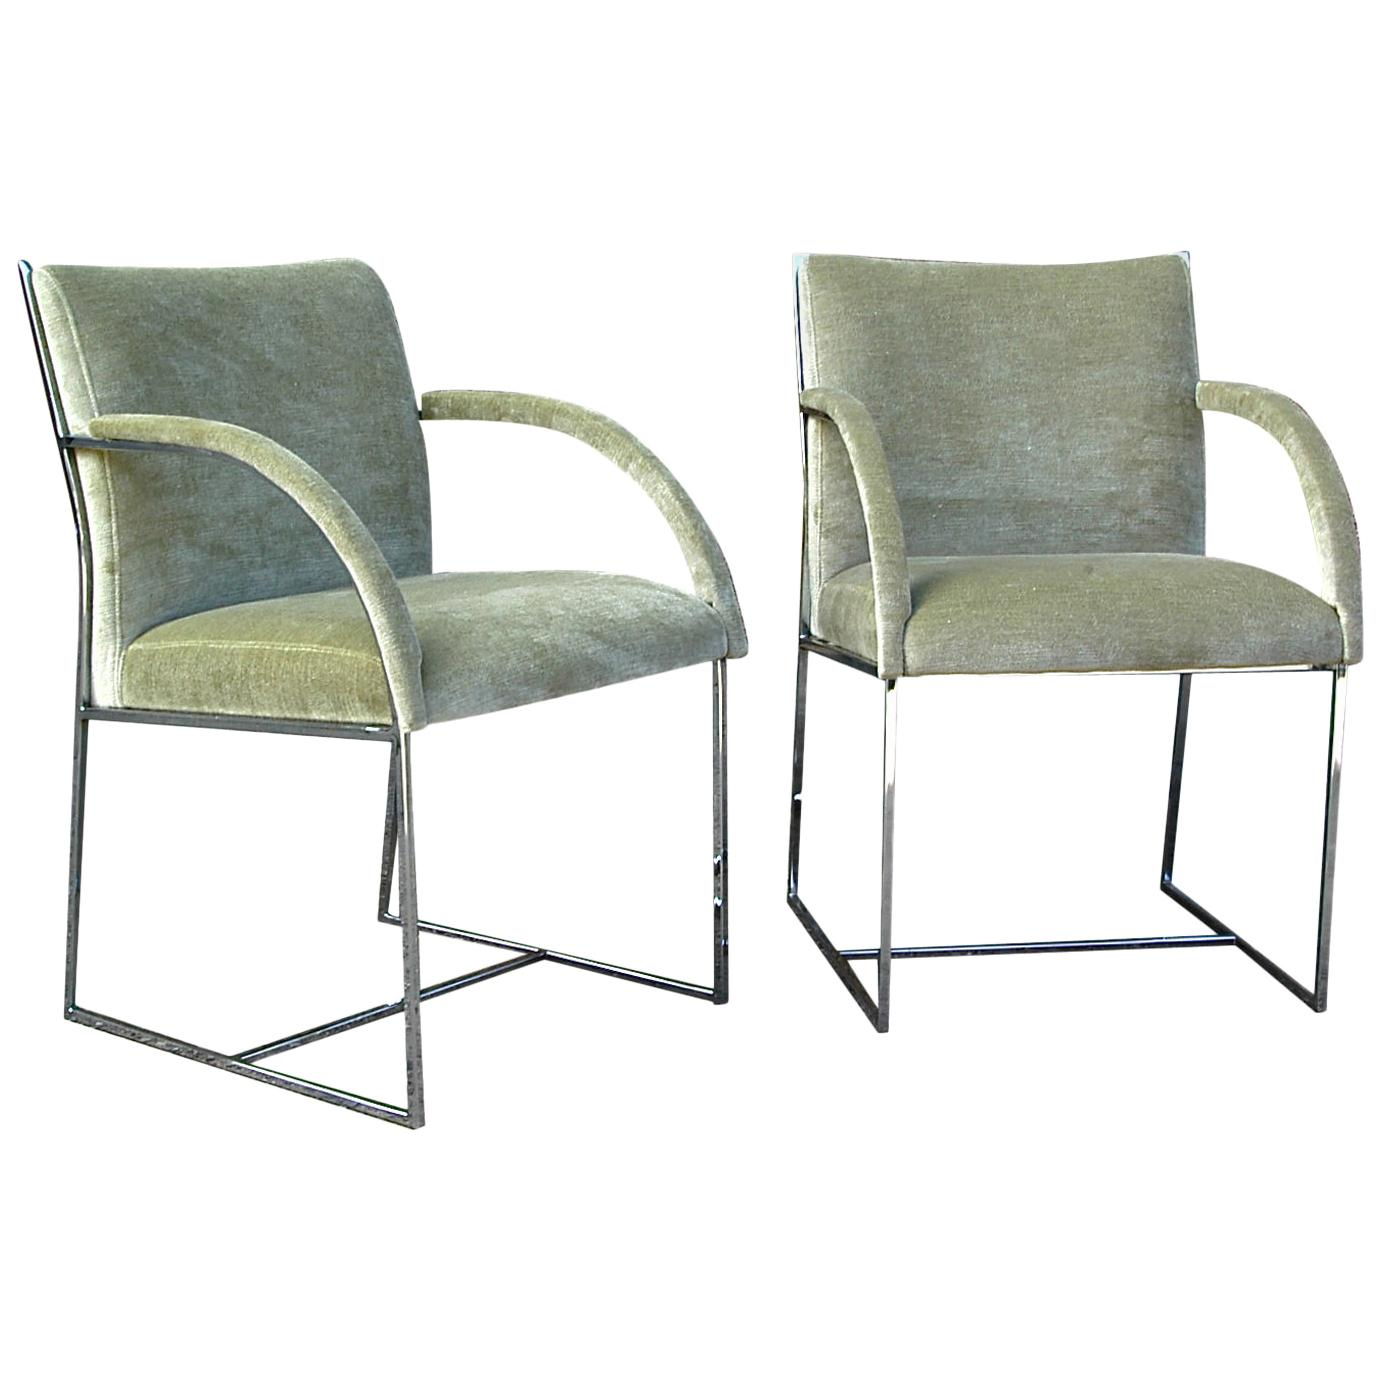 Mid-Century Modern Chrome Armchairs in the Style of Milo Baughman